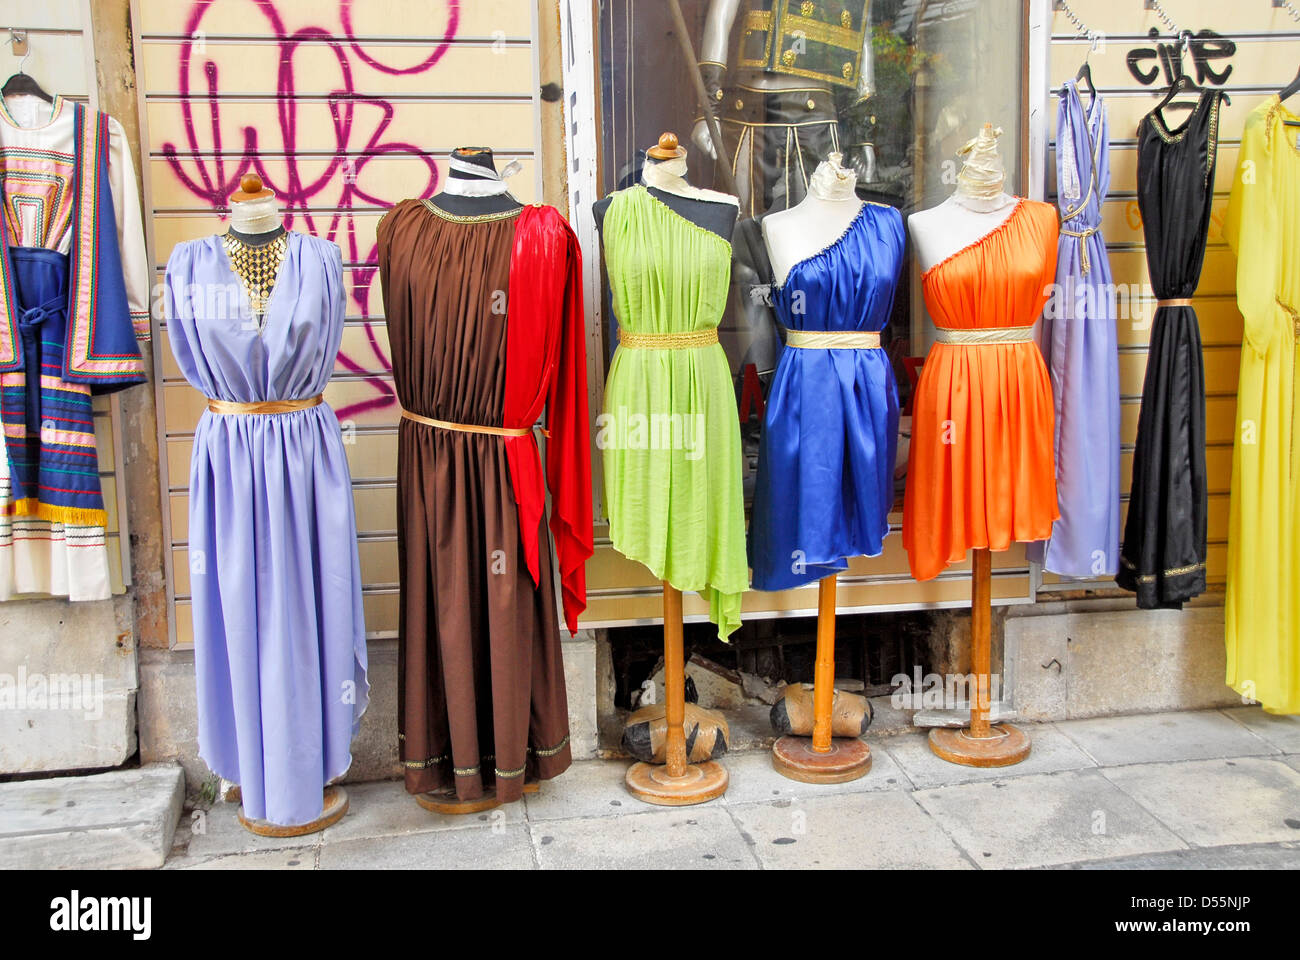 dresses-in-the-shopping-street-in-the-ol